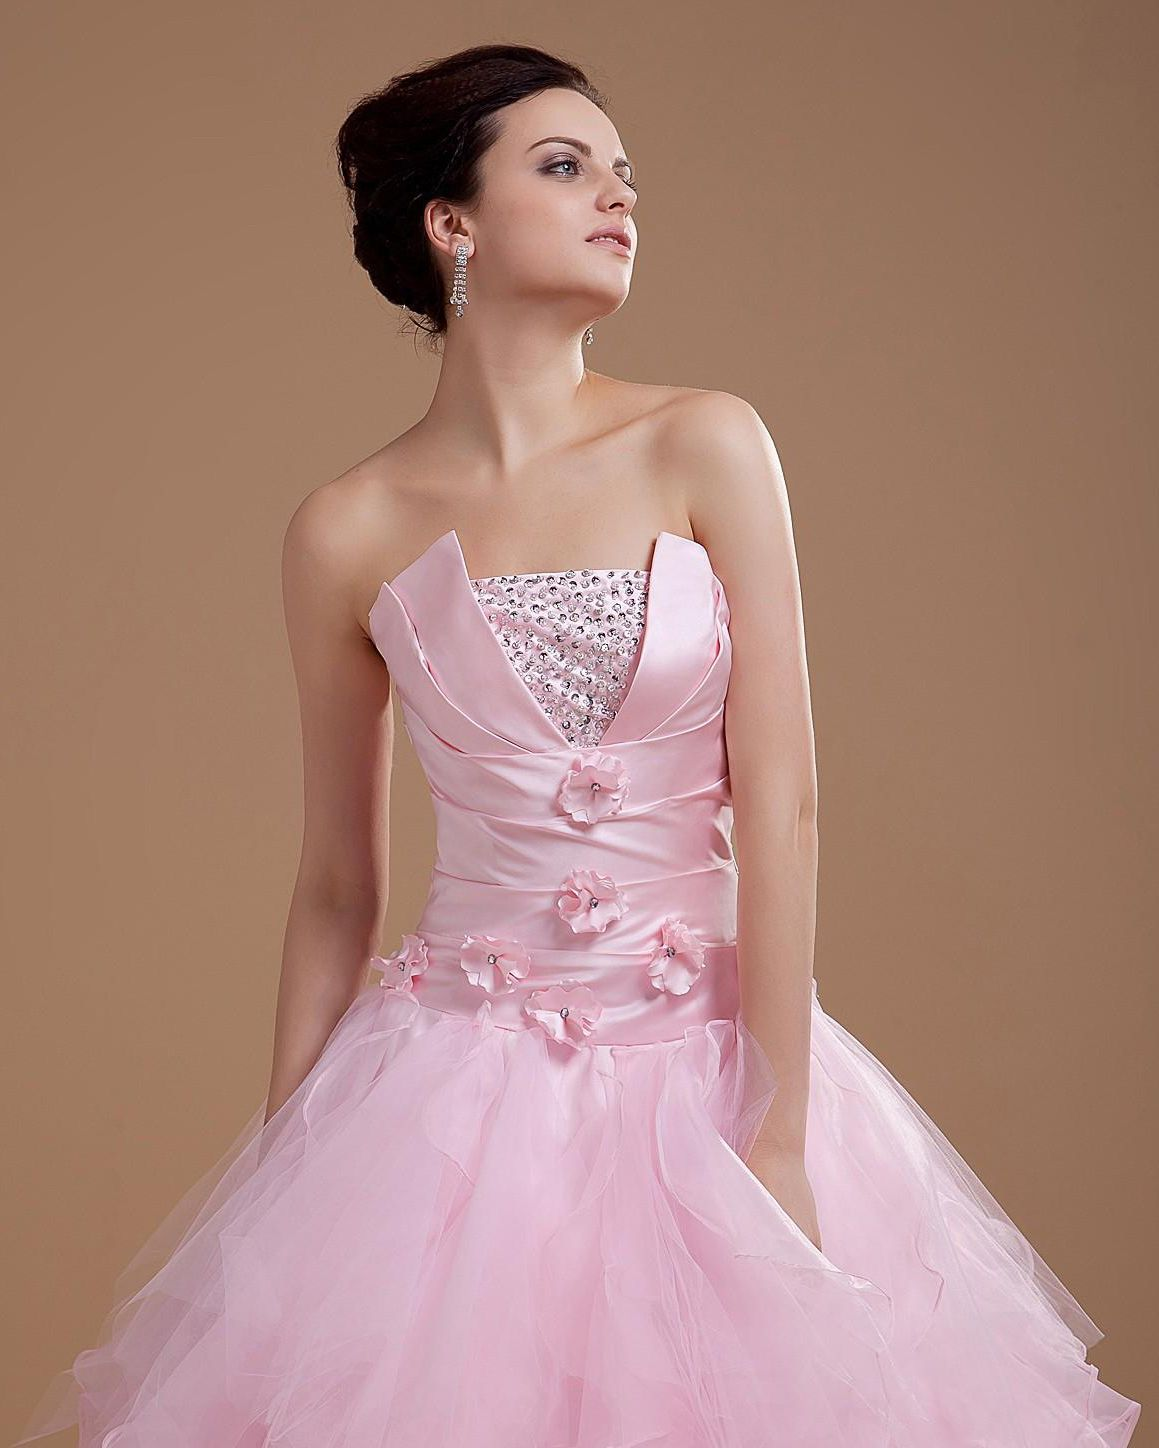 Organza Beading Strapless Floor Length Ball Gown Quinceanera Wedding Dress,Style No.0bg02436,US$384.98   Read More:    http://www.weddingscasual.com/index.php?r=organza-beading-strapless-floor-length-ball-gown-quinceanera-wedding-dress.html